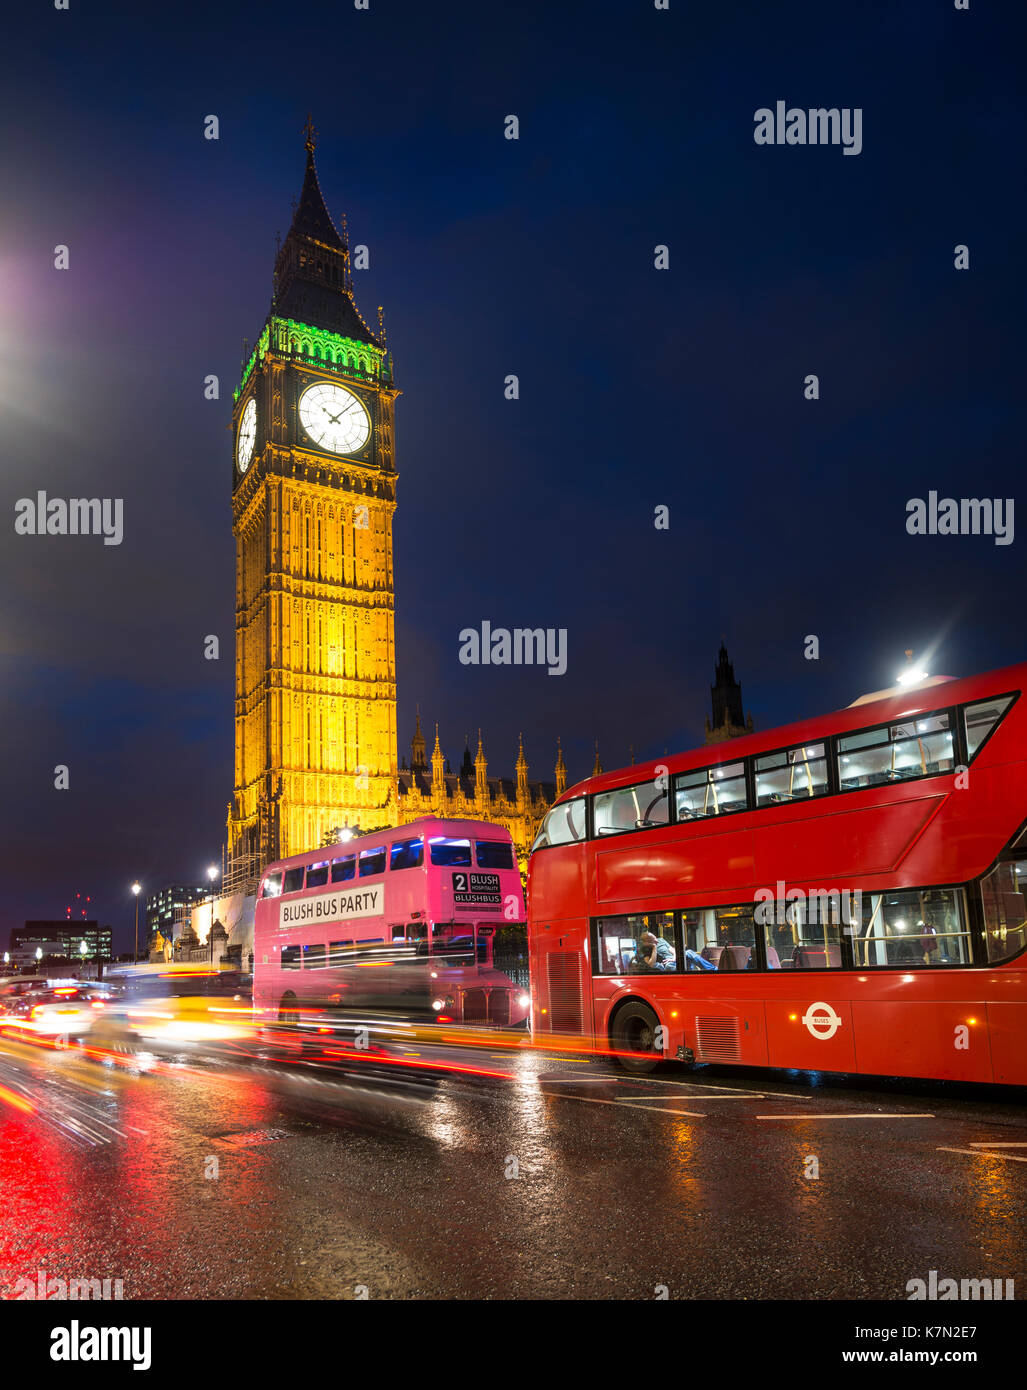 Red double-decker buses in front of Big Ben, Houses of Parliament, light tracks, night scene, City of Westminster, London - Stock Image